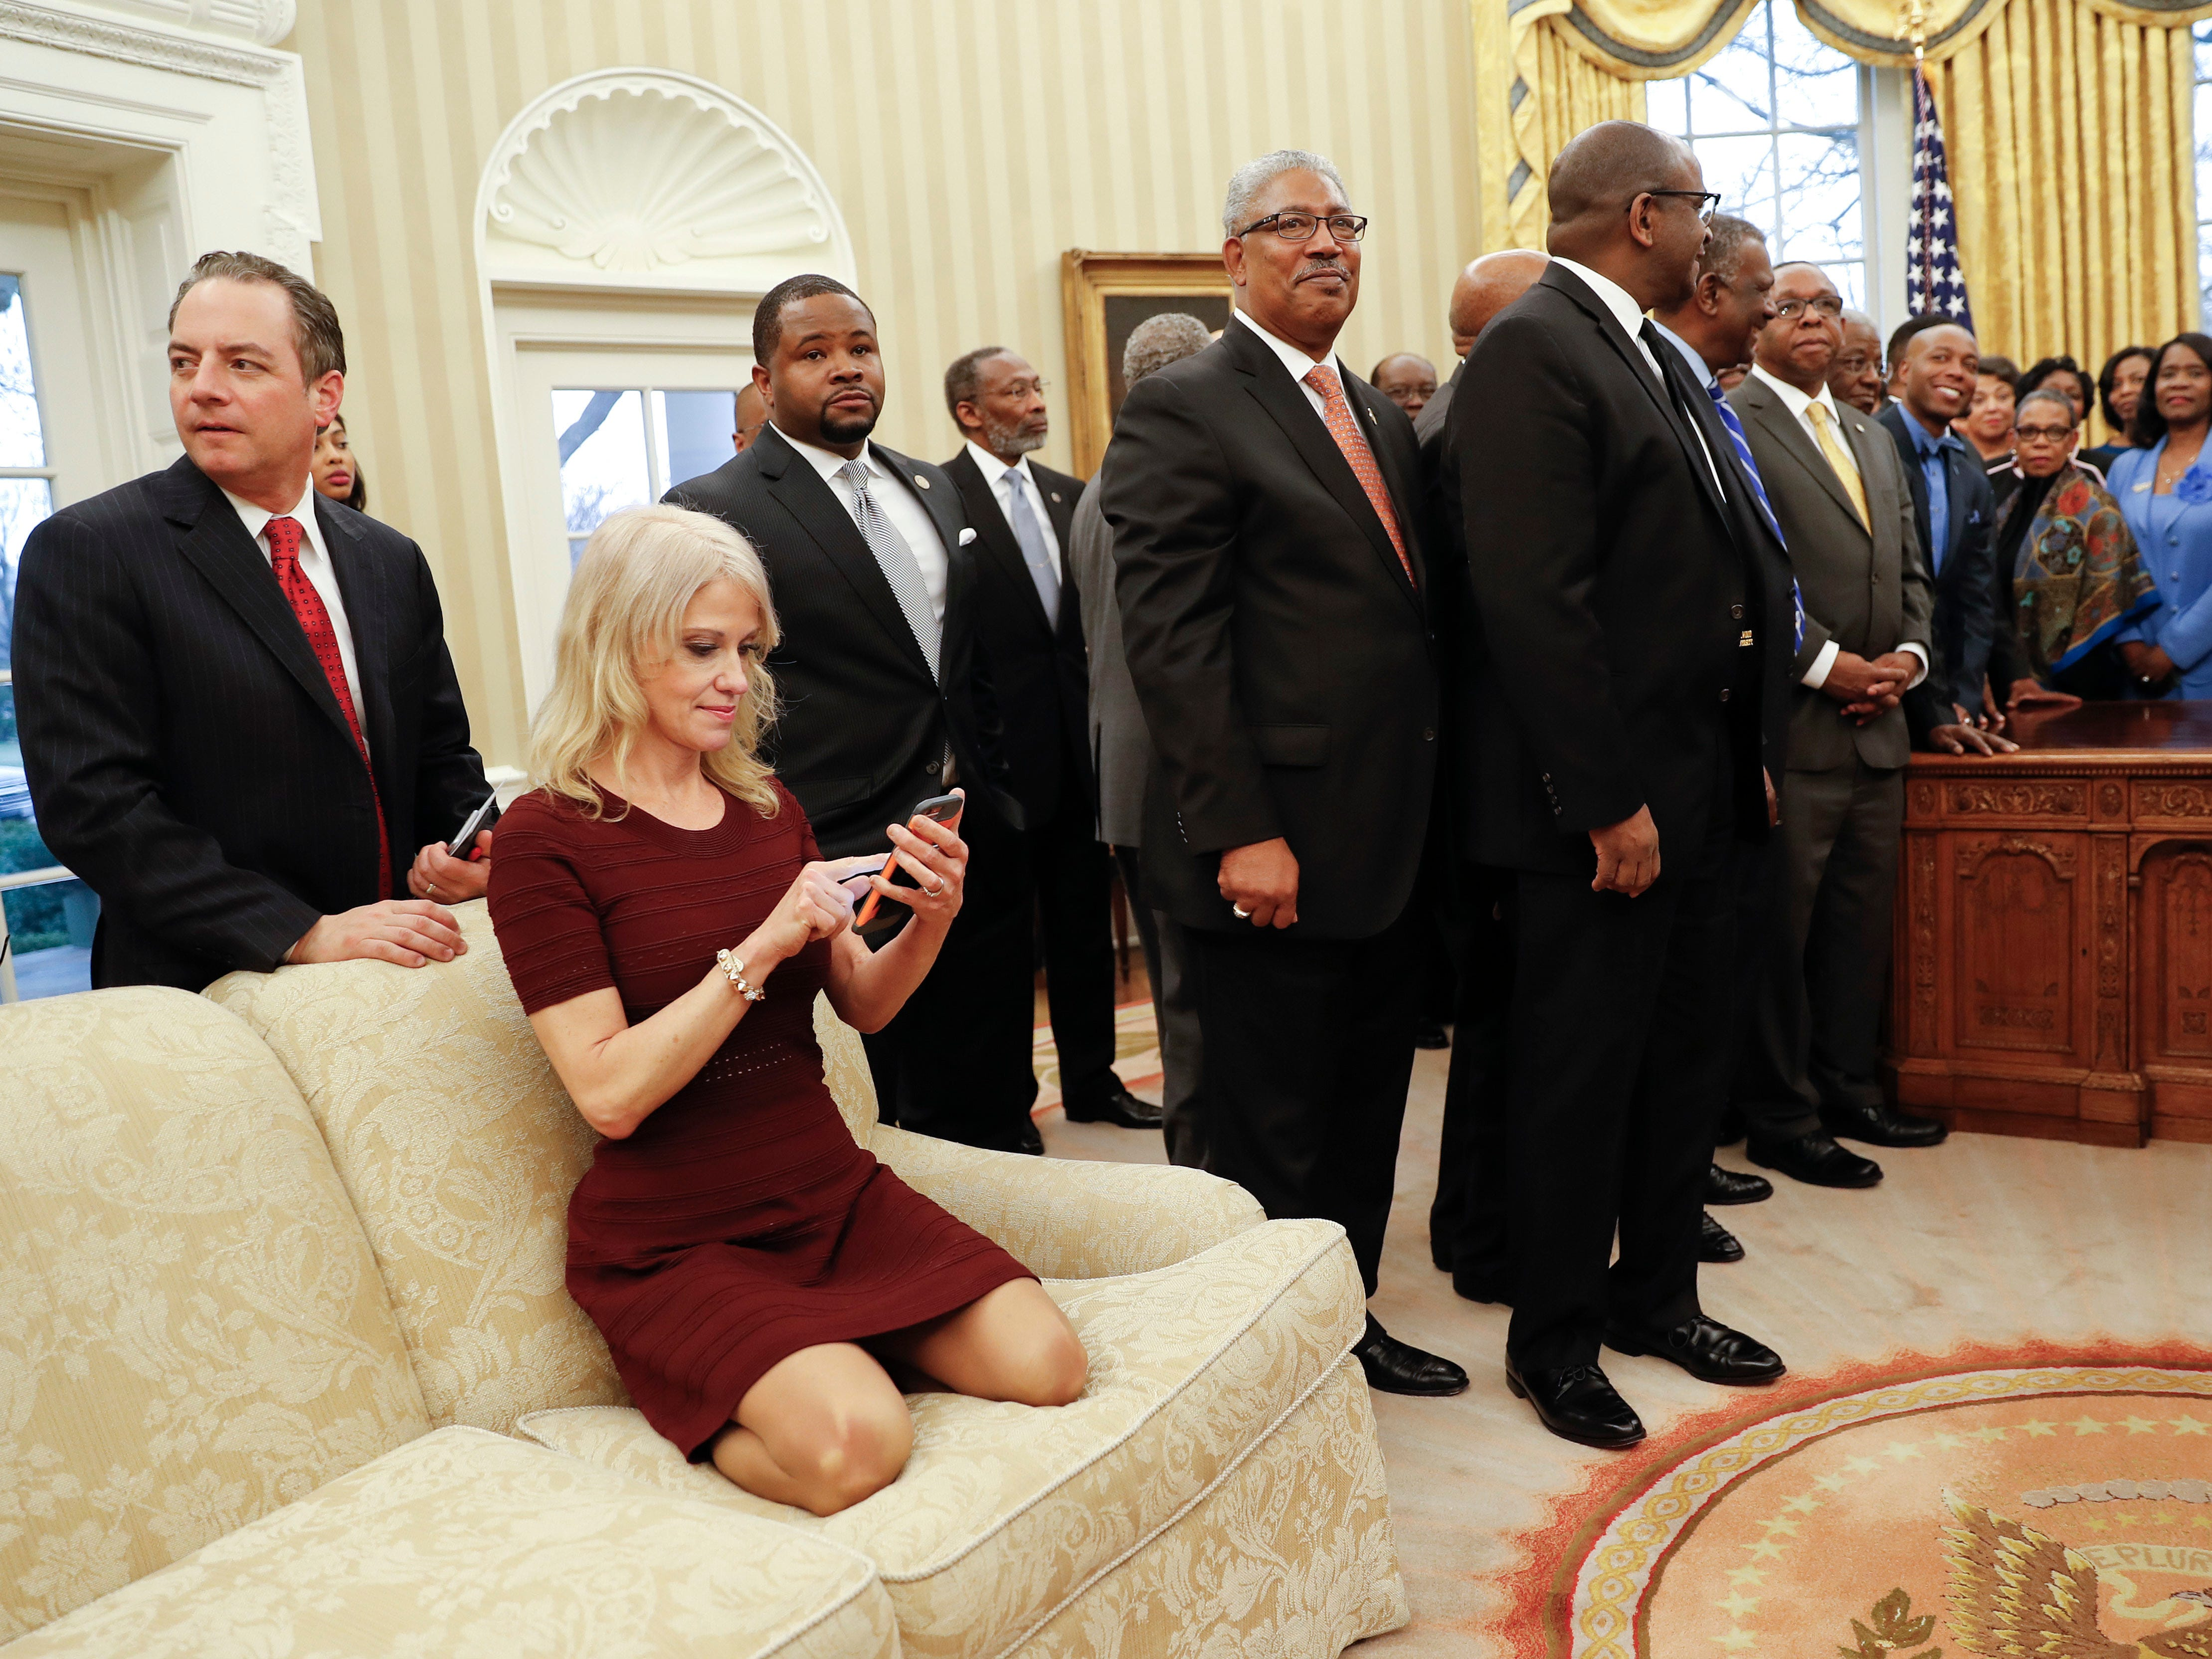 President Donald Trump (right), meets with leaders of Historically Black Colleges and Universities (HBCU) in the Oval Office of the White House. Also at the meeting are White House Chief of Staff Reince Priebus (left), and Counselor to the President Kellyanne Conway, on the couch.